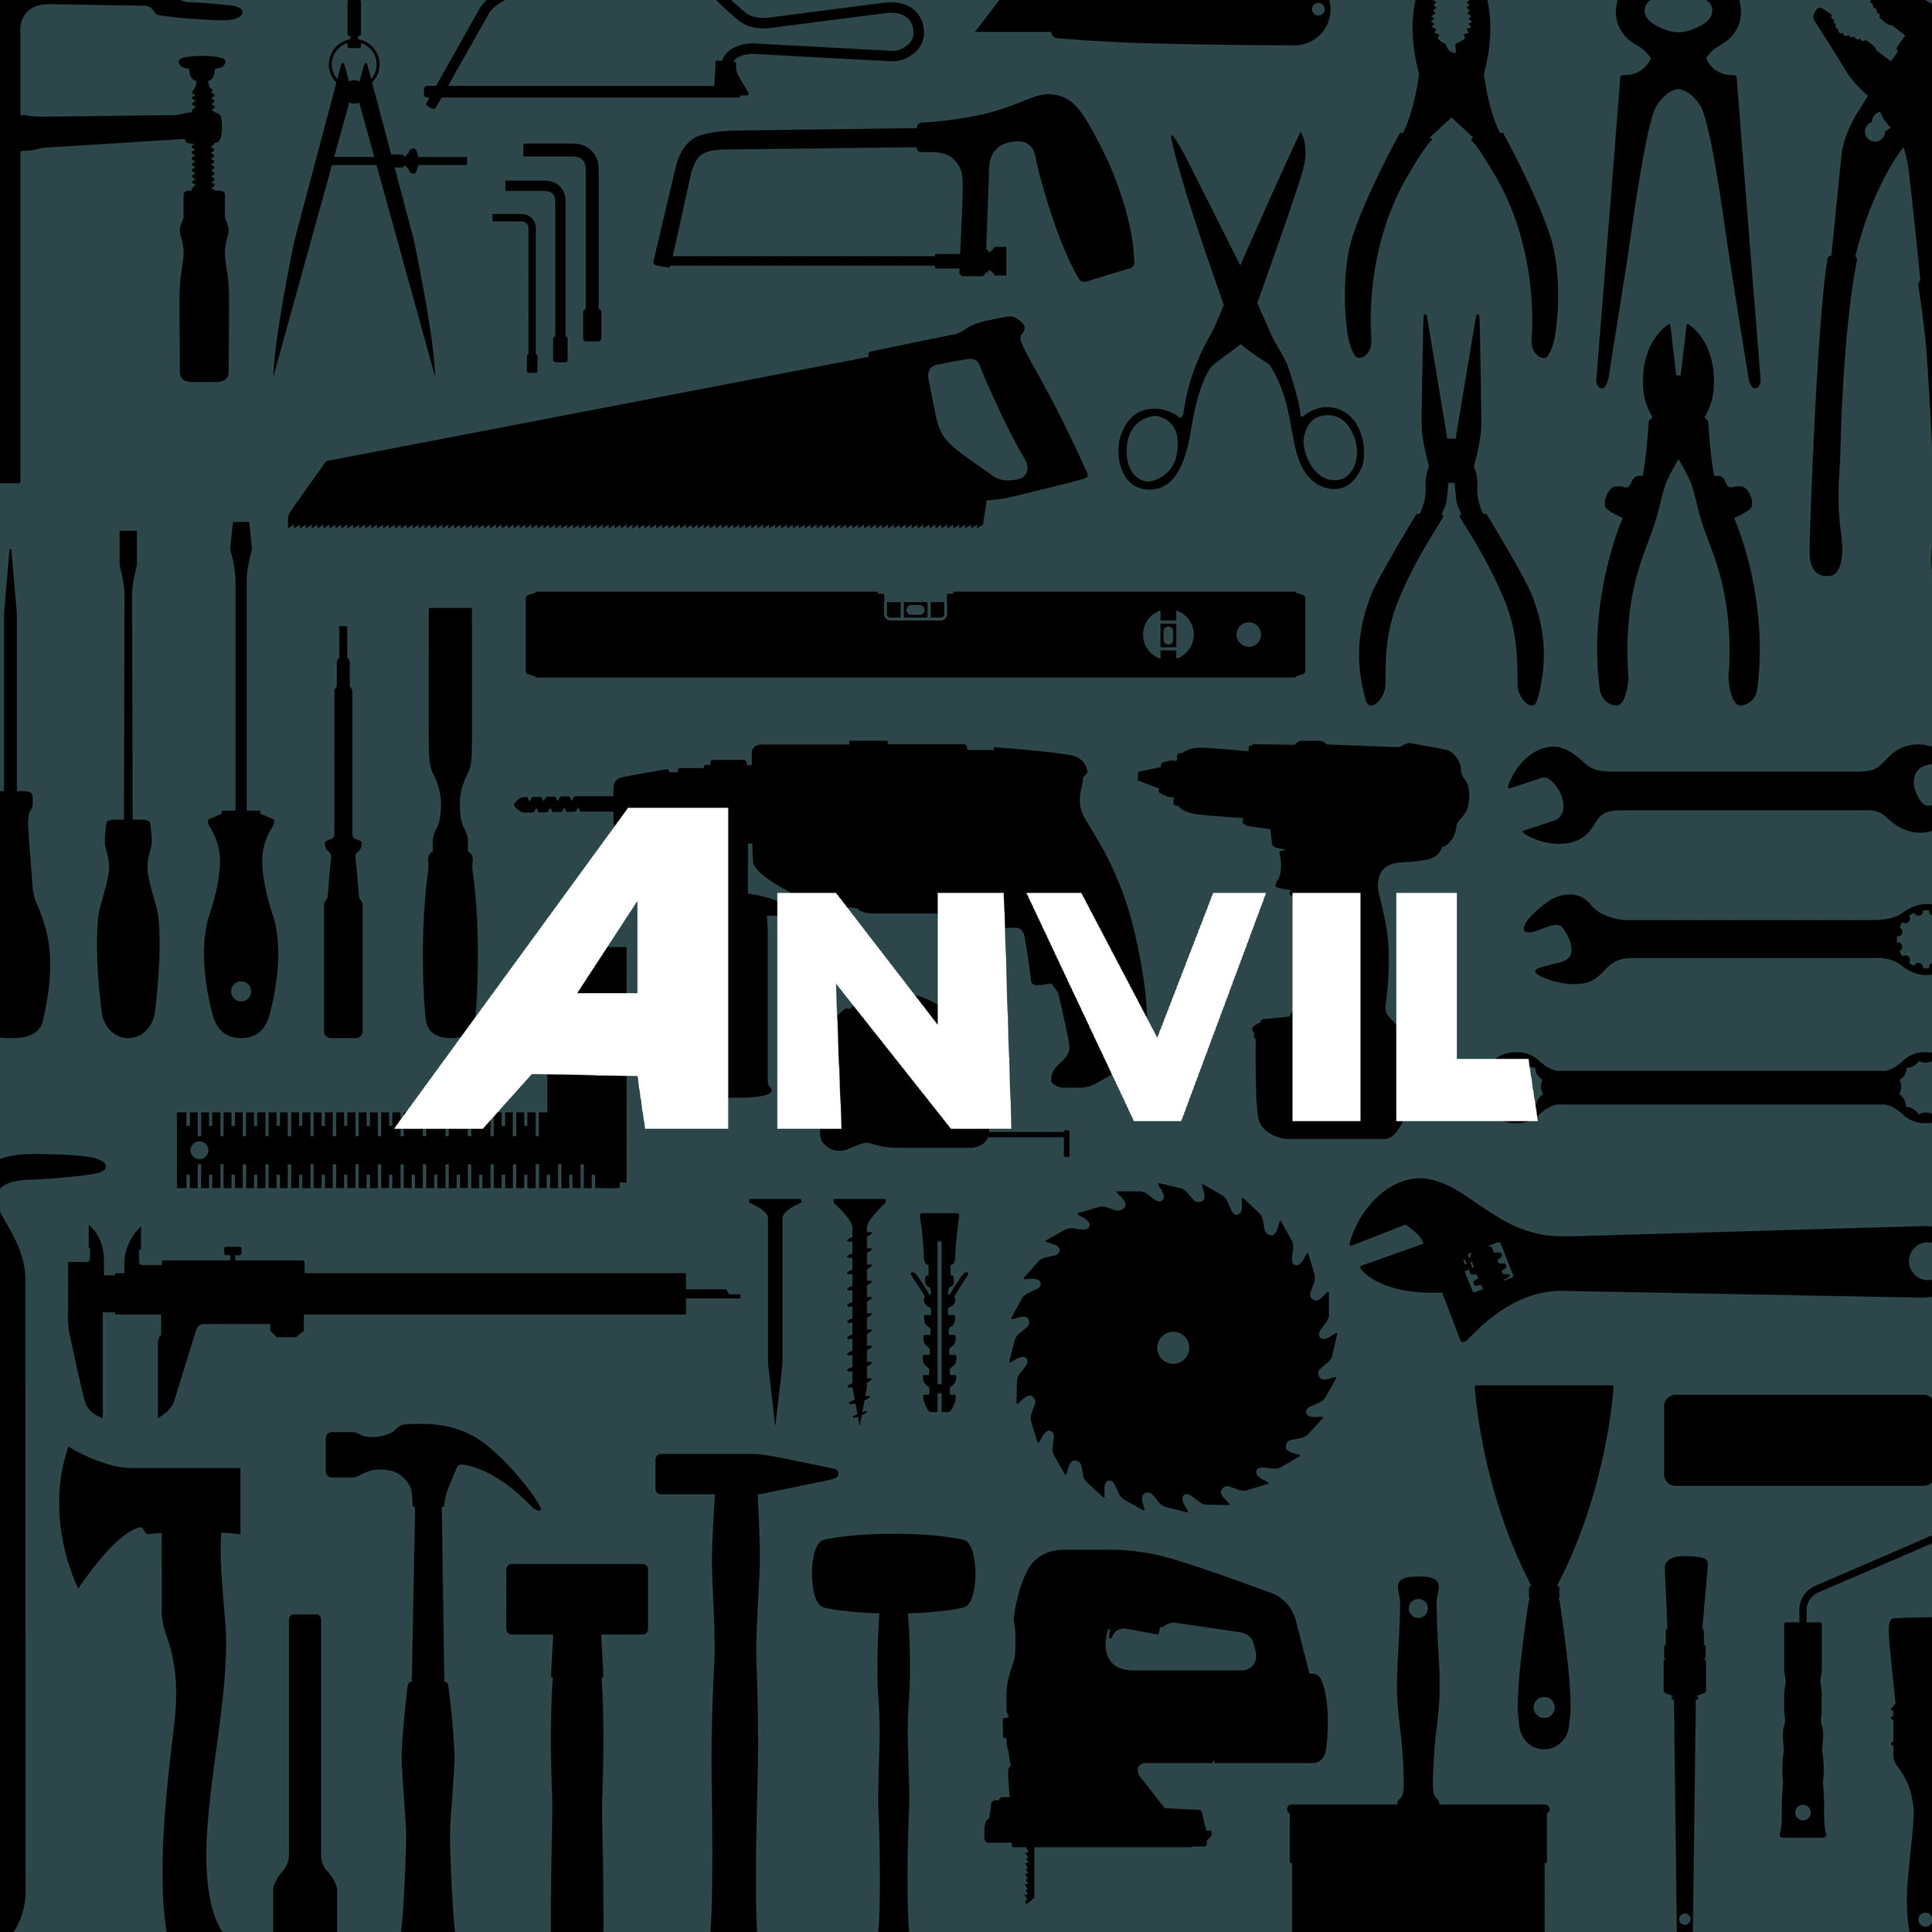 Anvil_The Home Depot_credential.jpg